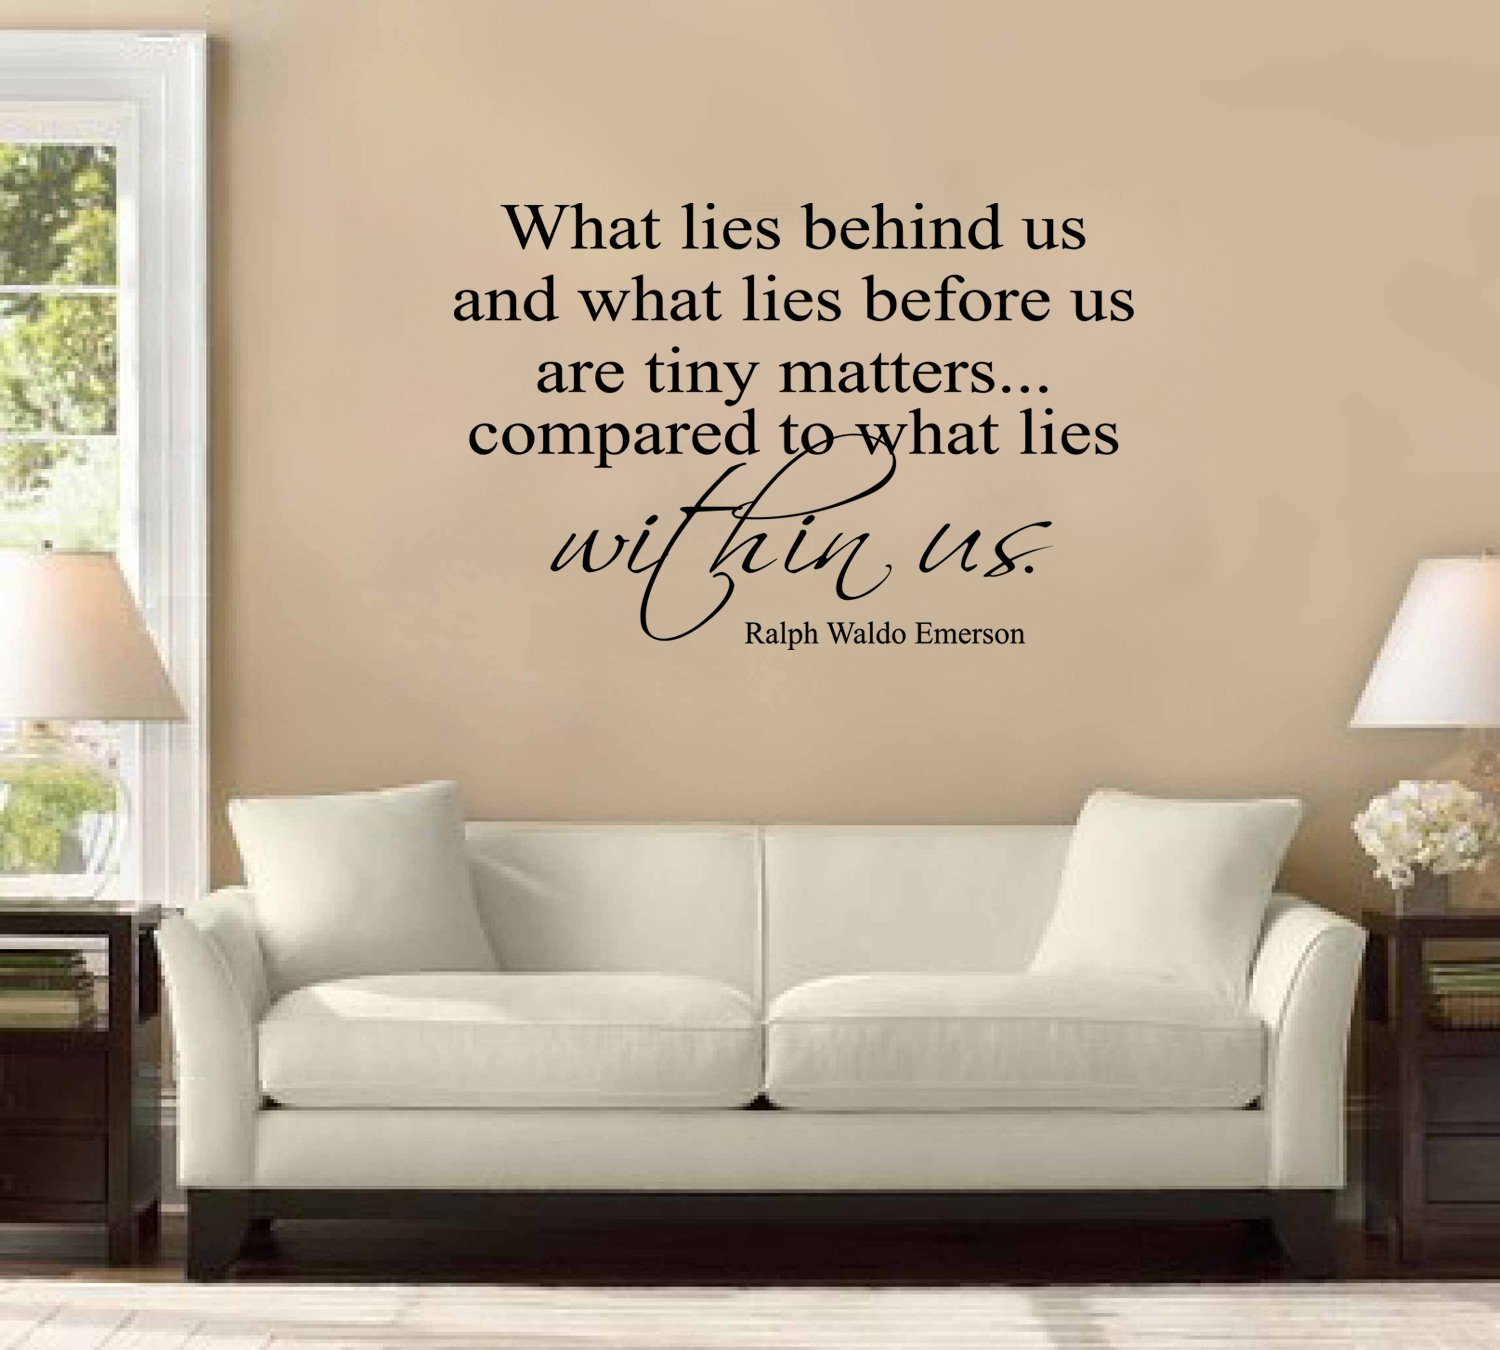 What lies behind us ralph waldo emerson large wall decal ralph waldo emerson large wall decal sticker quote home decoration decor other products amazon amipublicfo Gallery